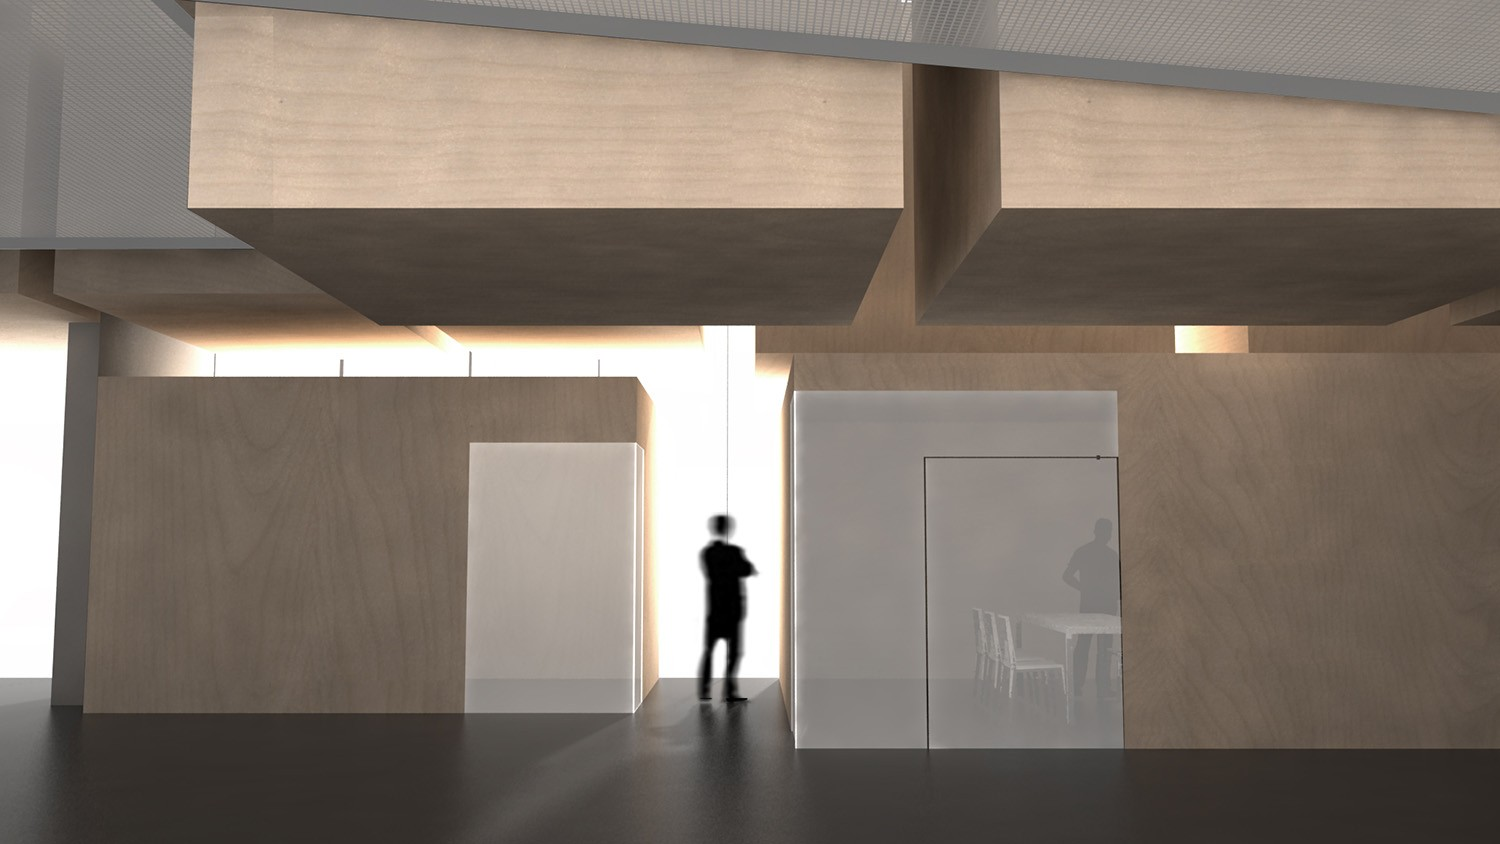 https://s3.us-east-2.amazonaws.com/steven-holl/uploads/projects/project-images/StevenHollArchitects_LCA_12.01_MusicBuildingInterior_WH.jpg